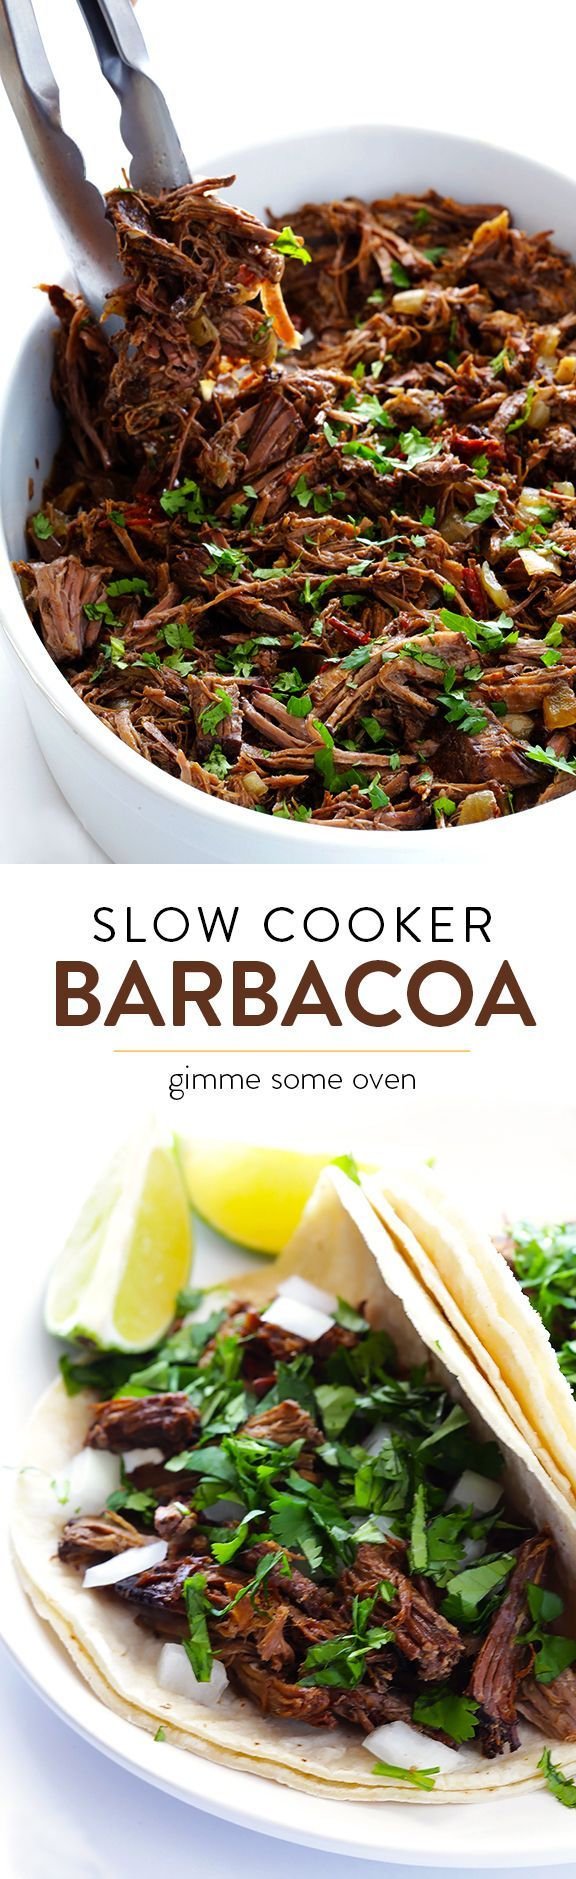 Learn how to make delicious barbacoa beef in the slow cooker! Perfect for tacos, burritos, salads, and more! – I Quit Sugar